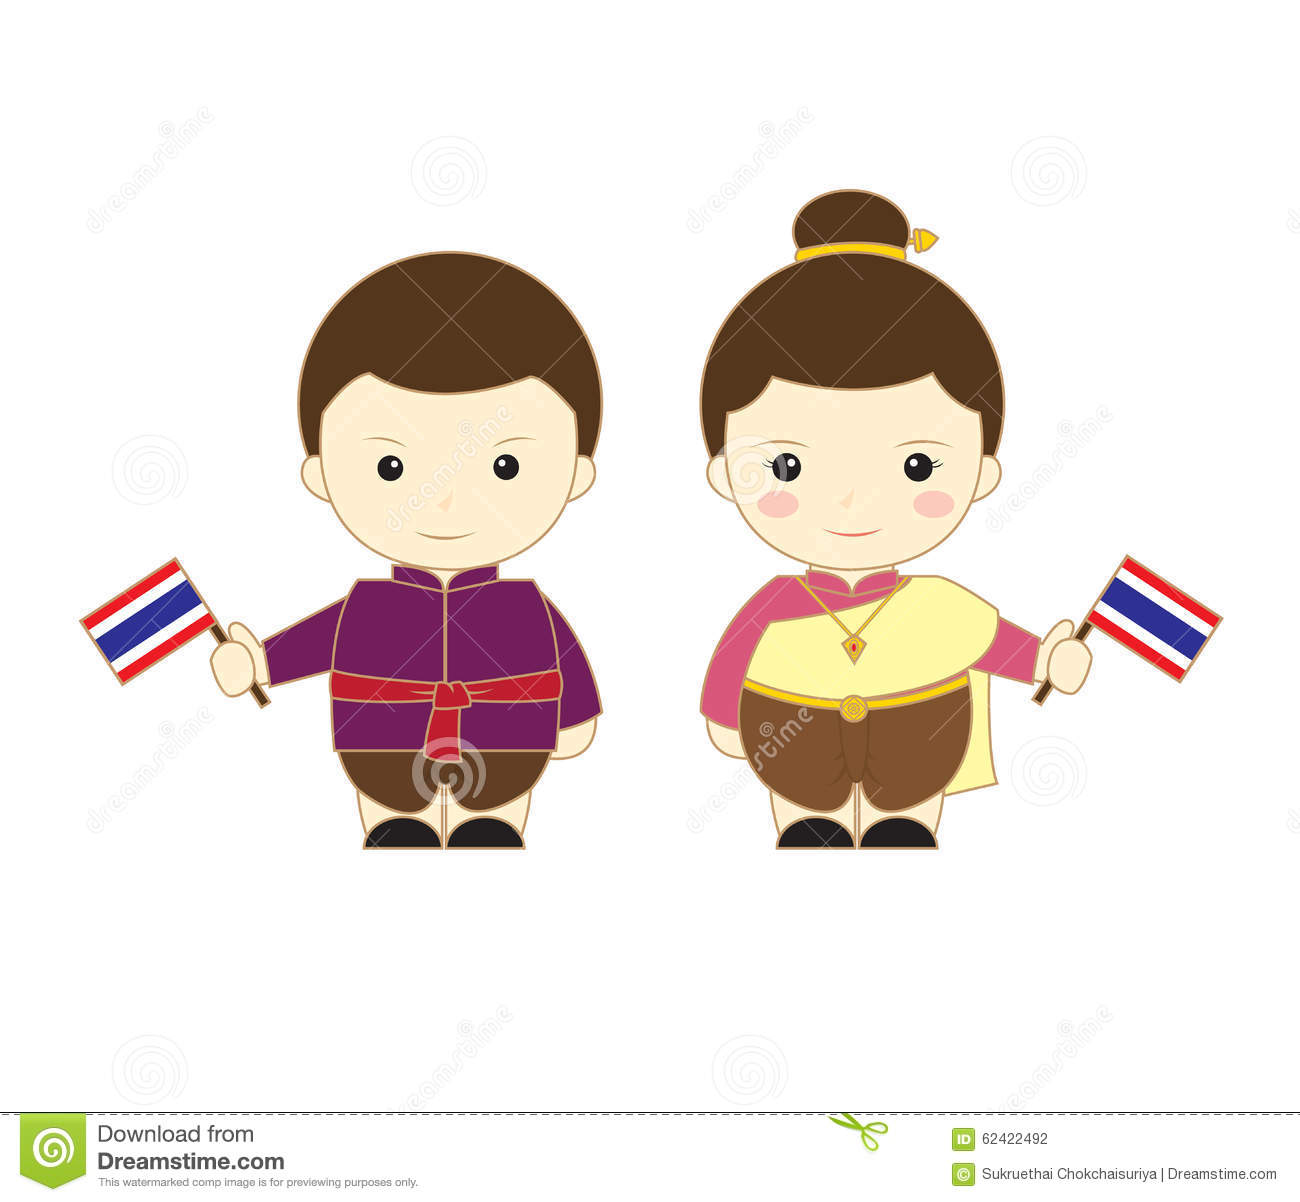 Thailand Cartoon Kids Stock Illustration - Image: 62422492